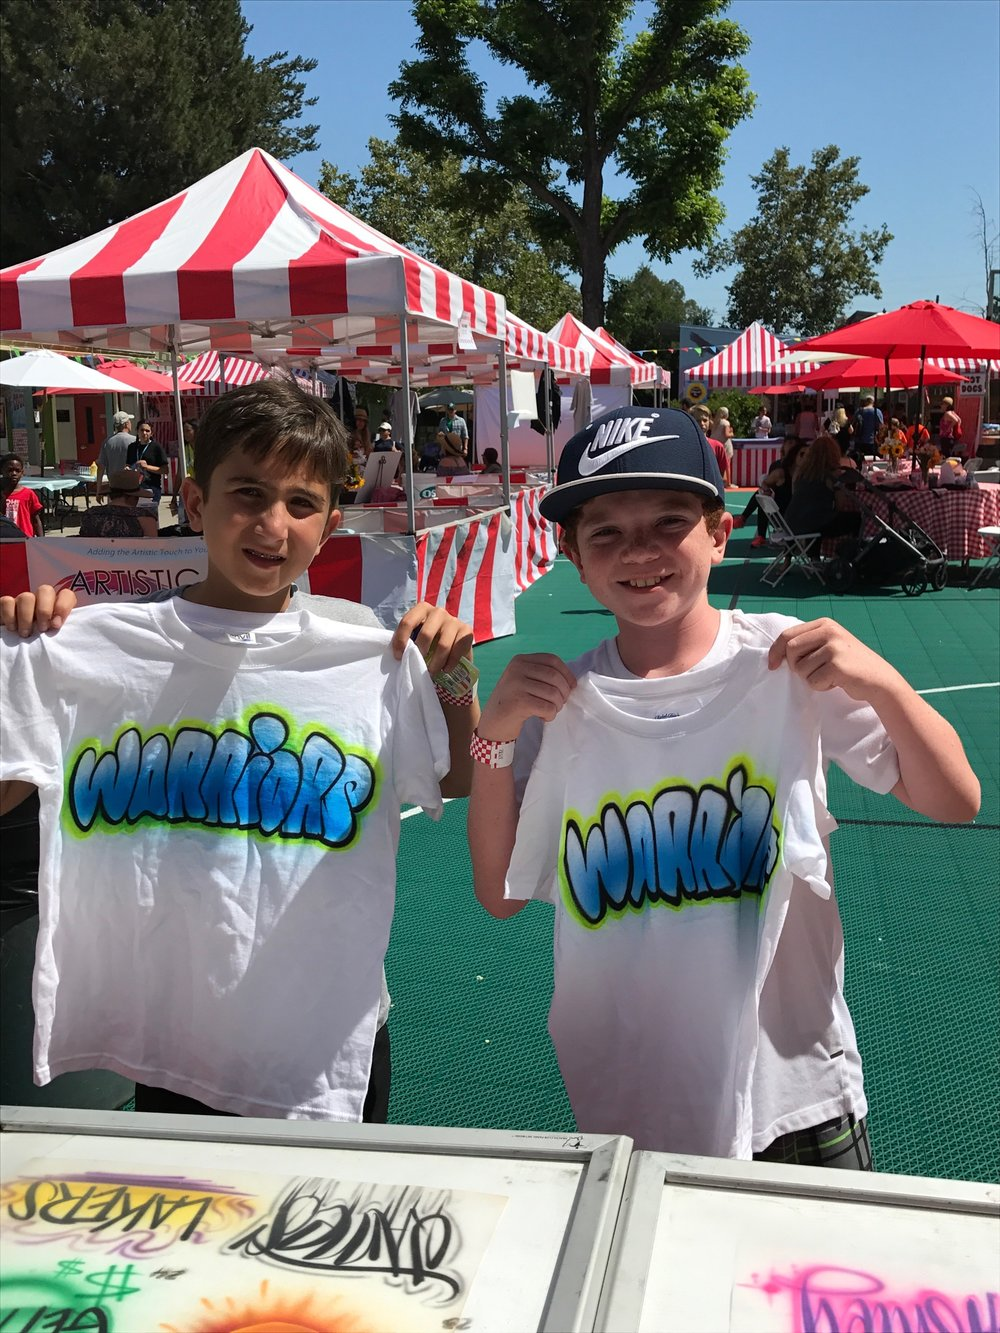 Airbrush t-shirts at a school carnival